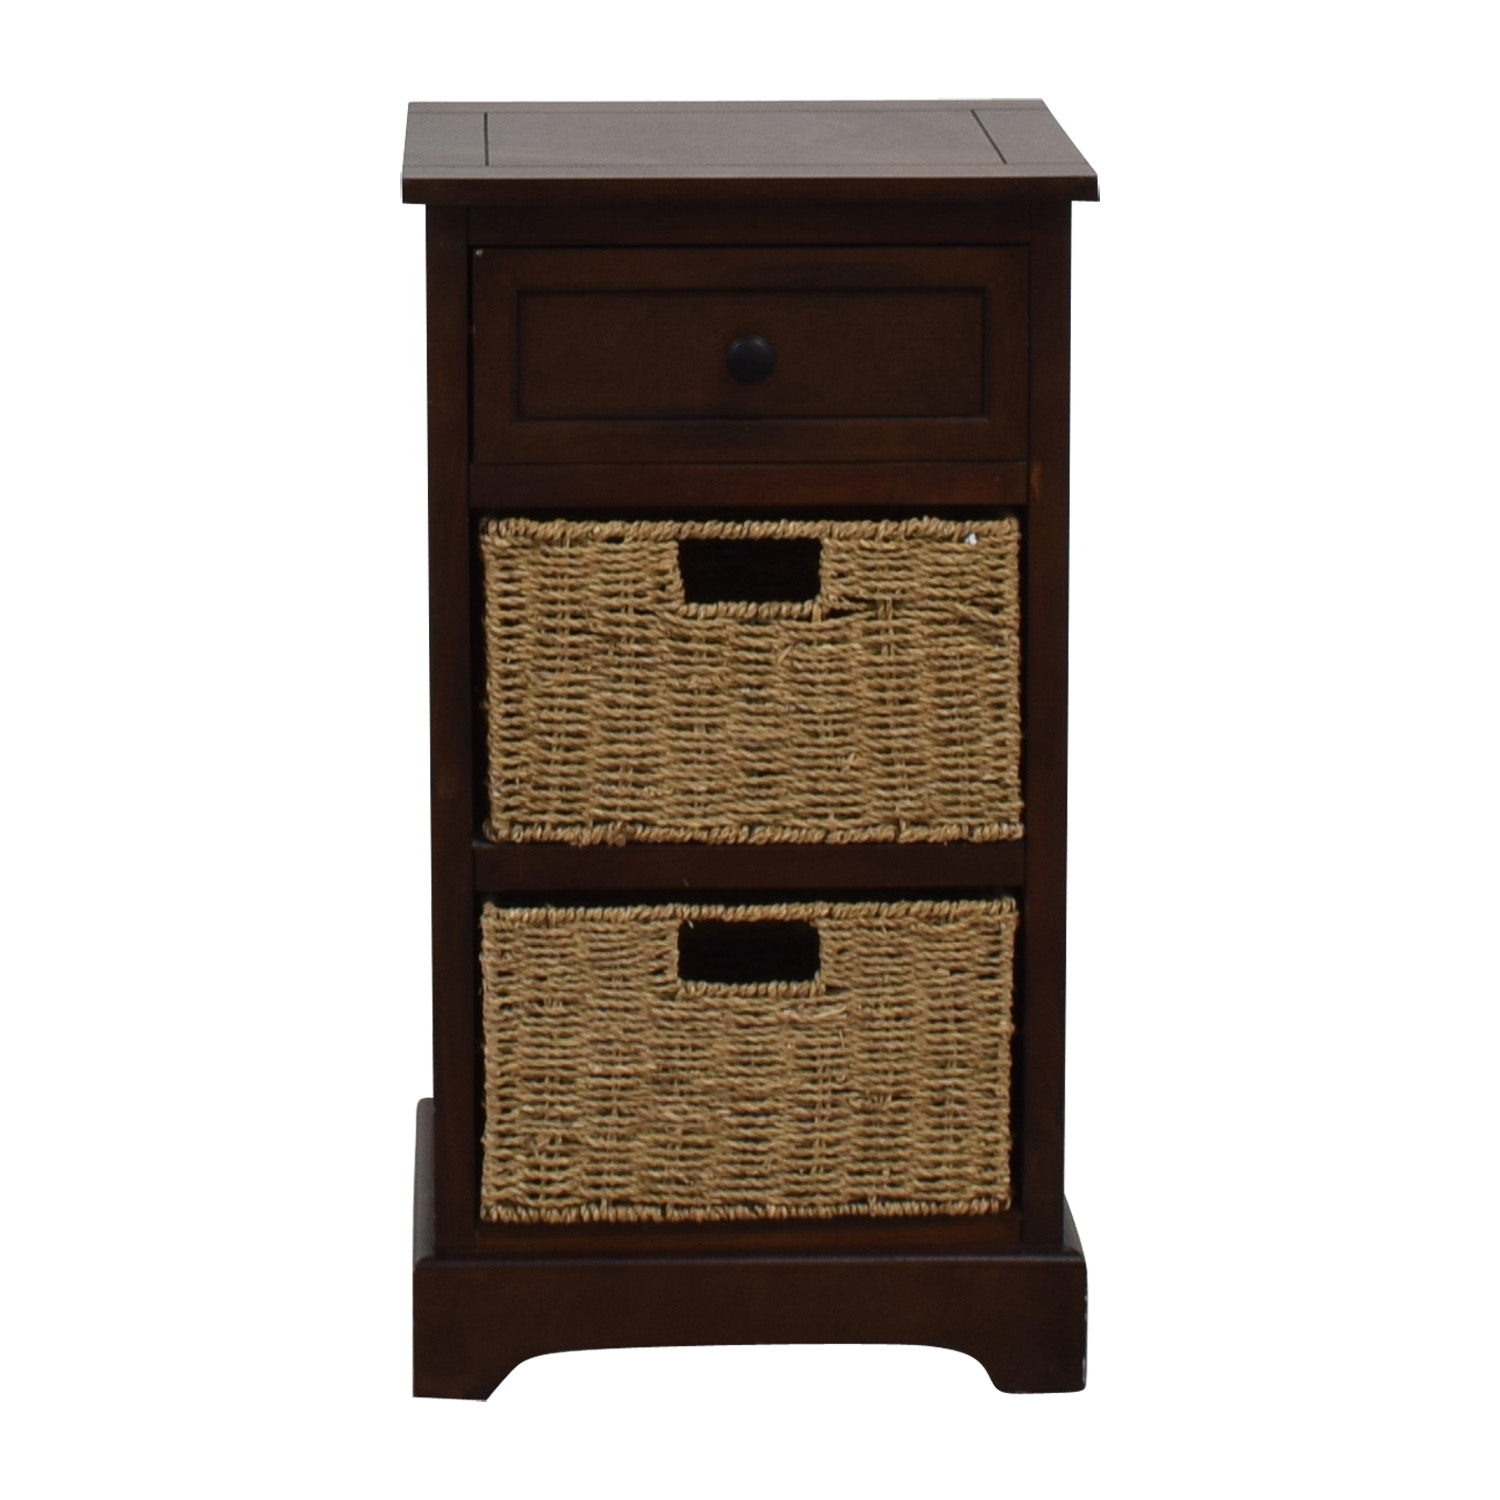 Wood Side Table with Two Wicker Baskets dimensions